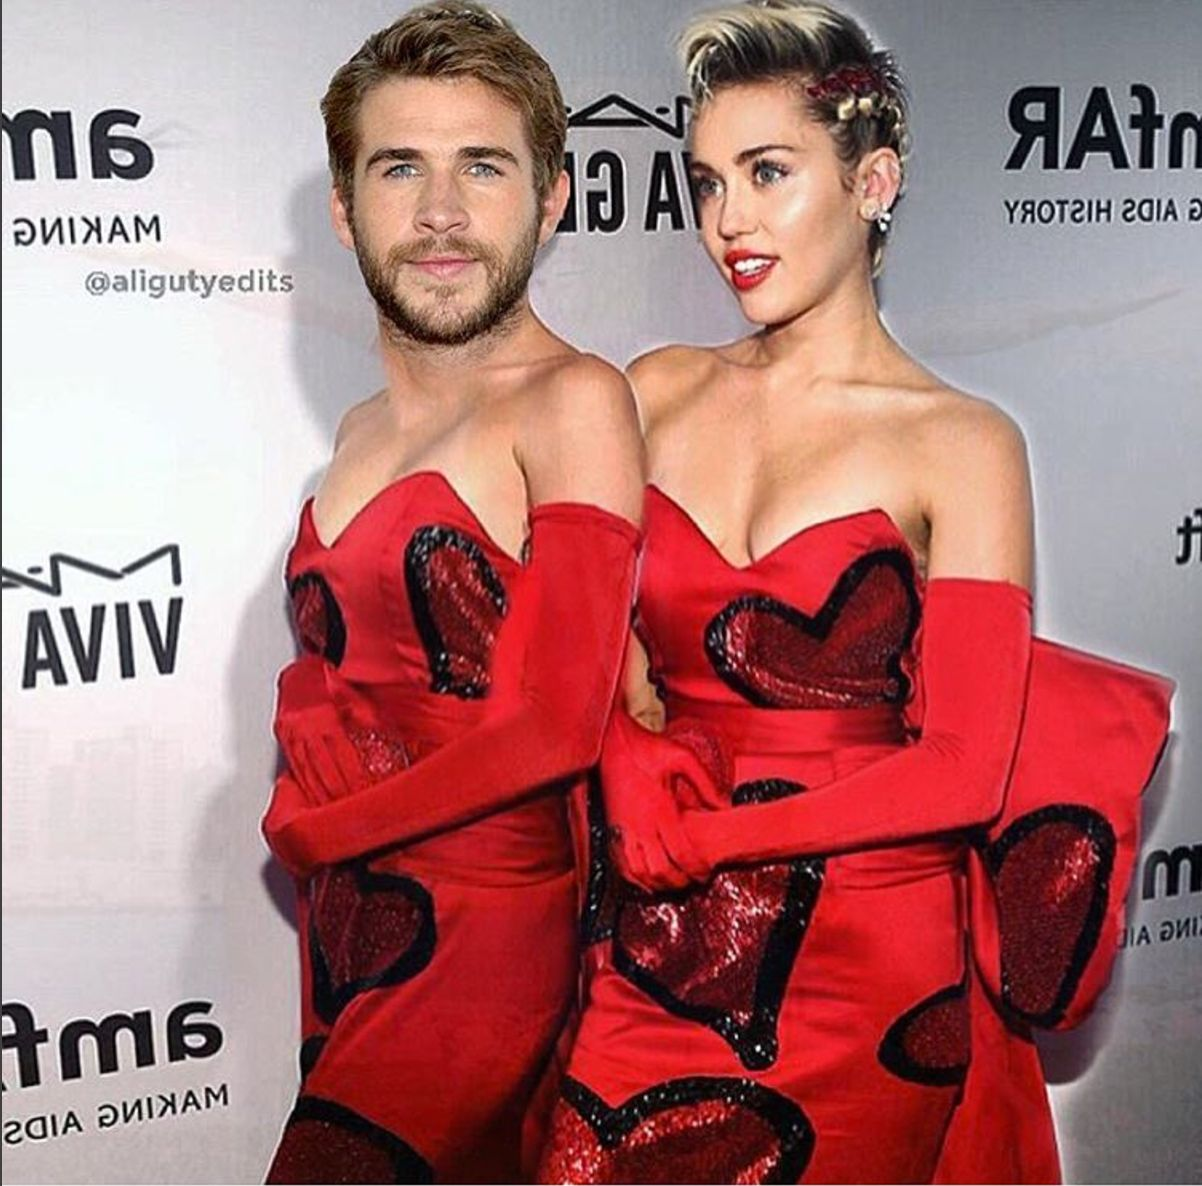 You Won't Be Able To Unsee This Adorably Weird Photo Of Miley Cyrus And Liam